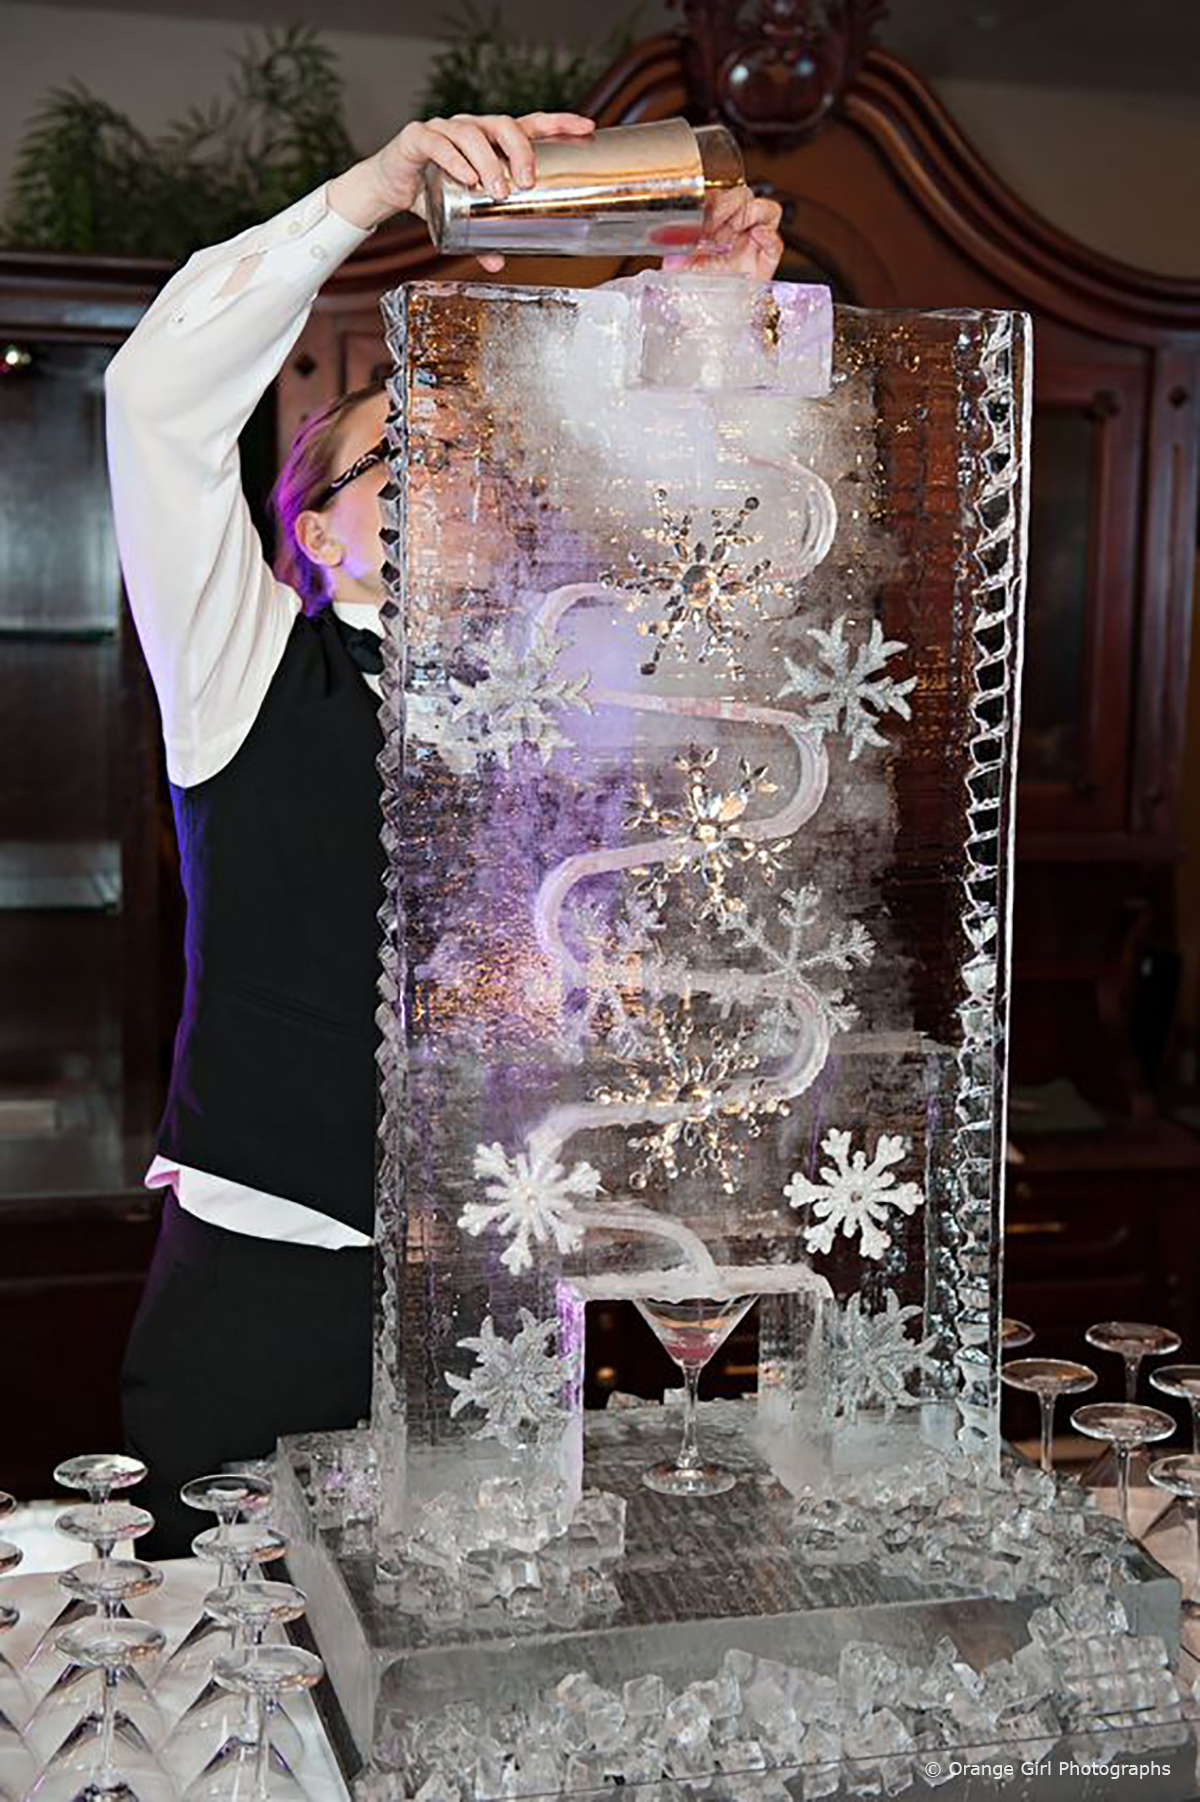 Wedding Entertainment Ideas - Cold As Ice © Orange Girl Photographs